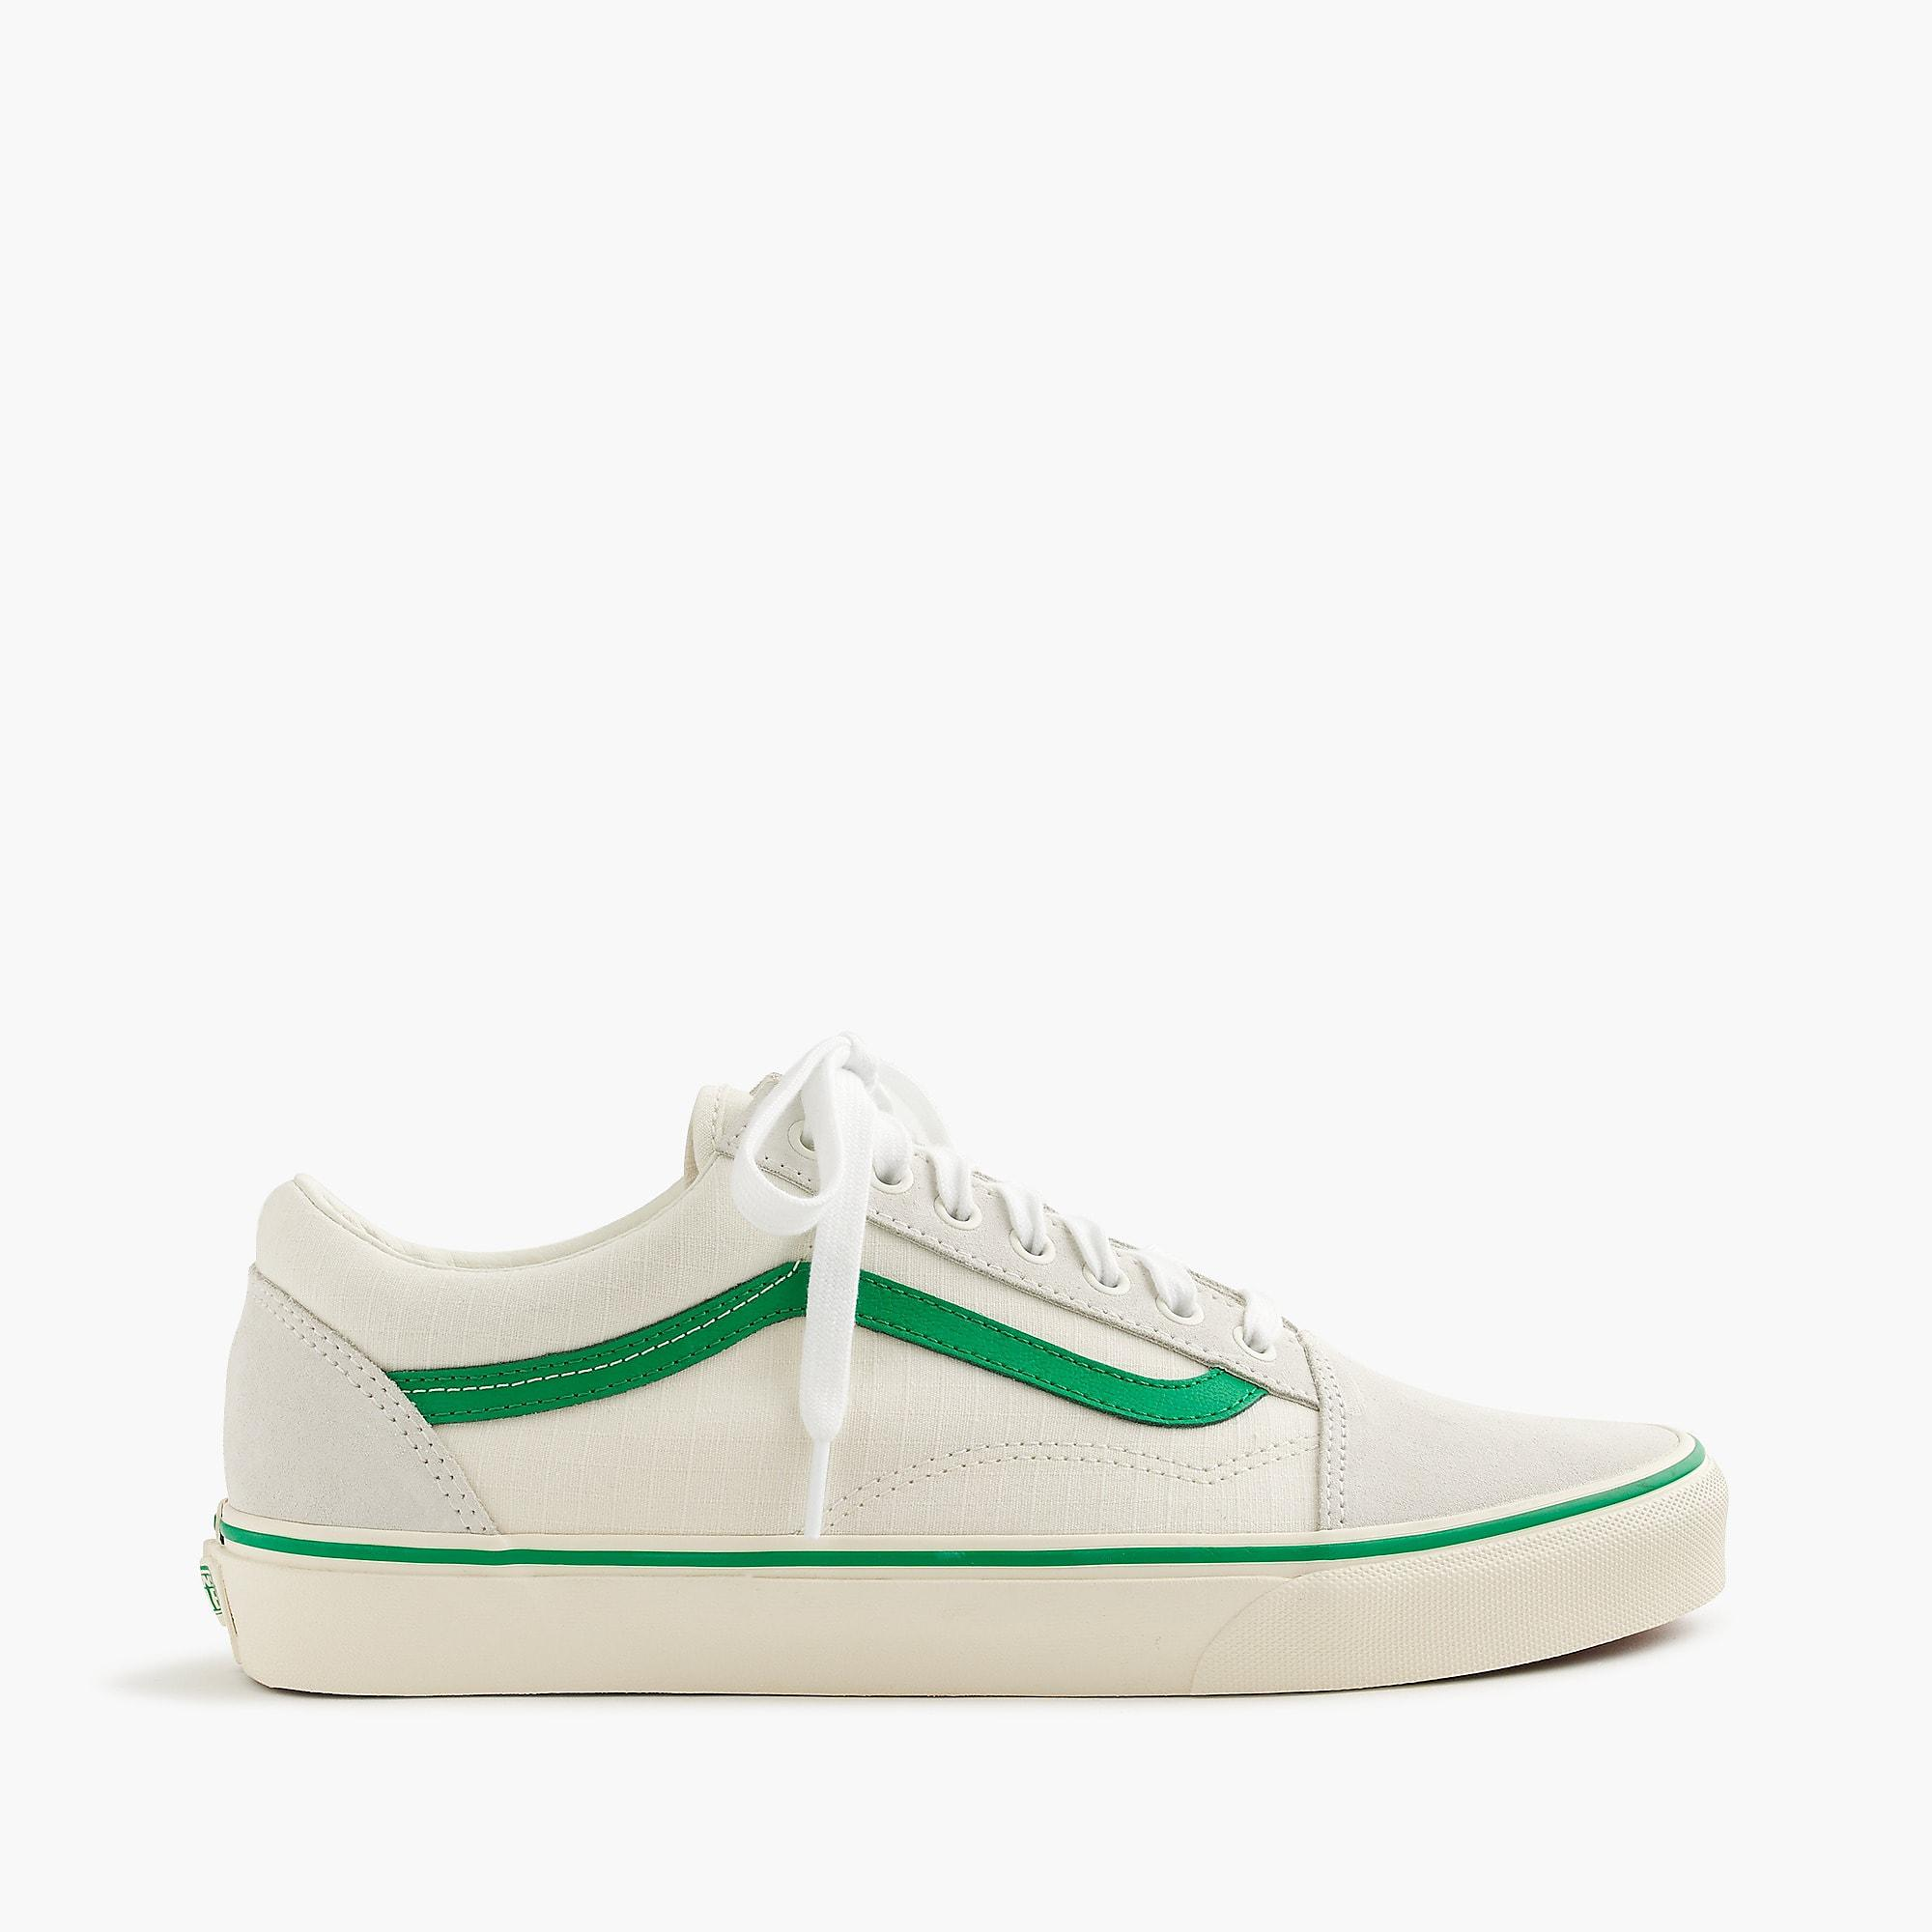 Lyst - Vans Old Skool Sneakers In Ripstop Cotton in Green for Men 558793febd